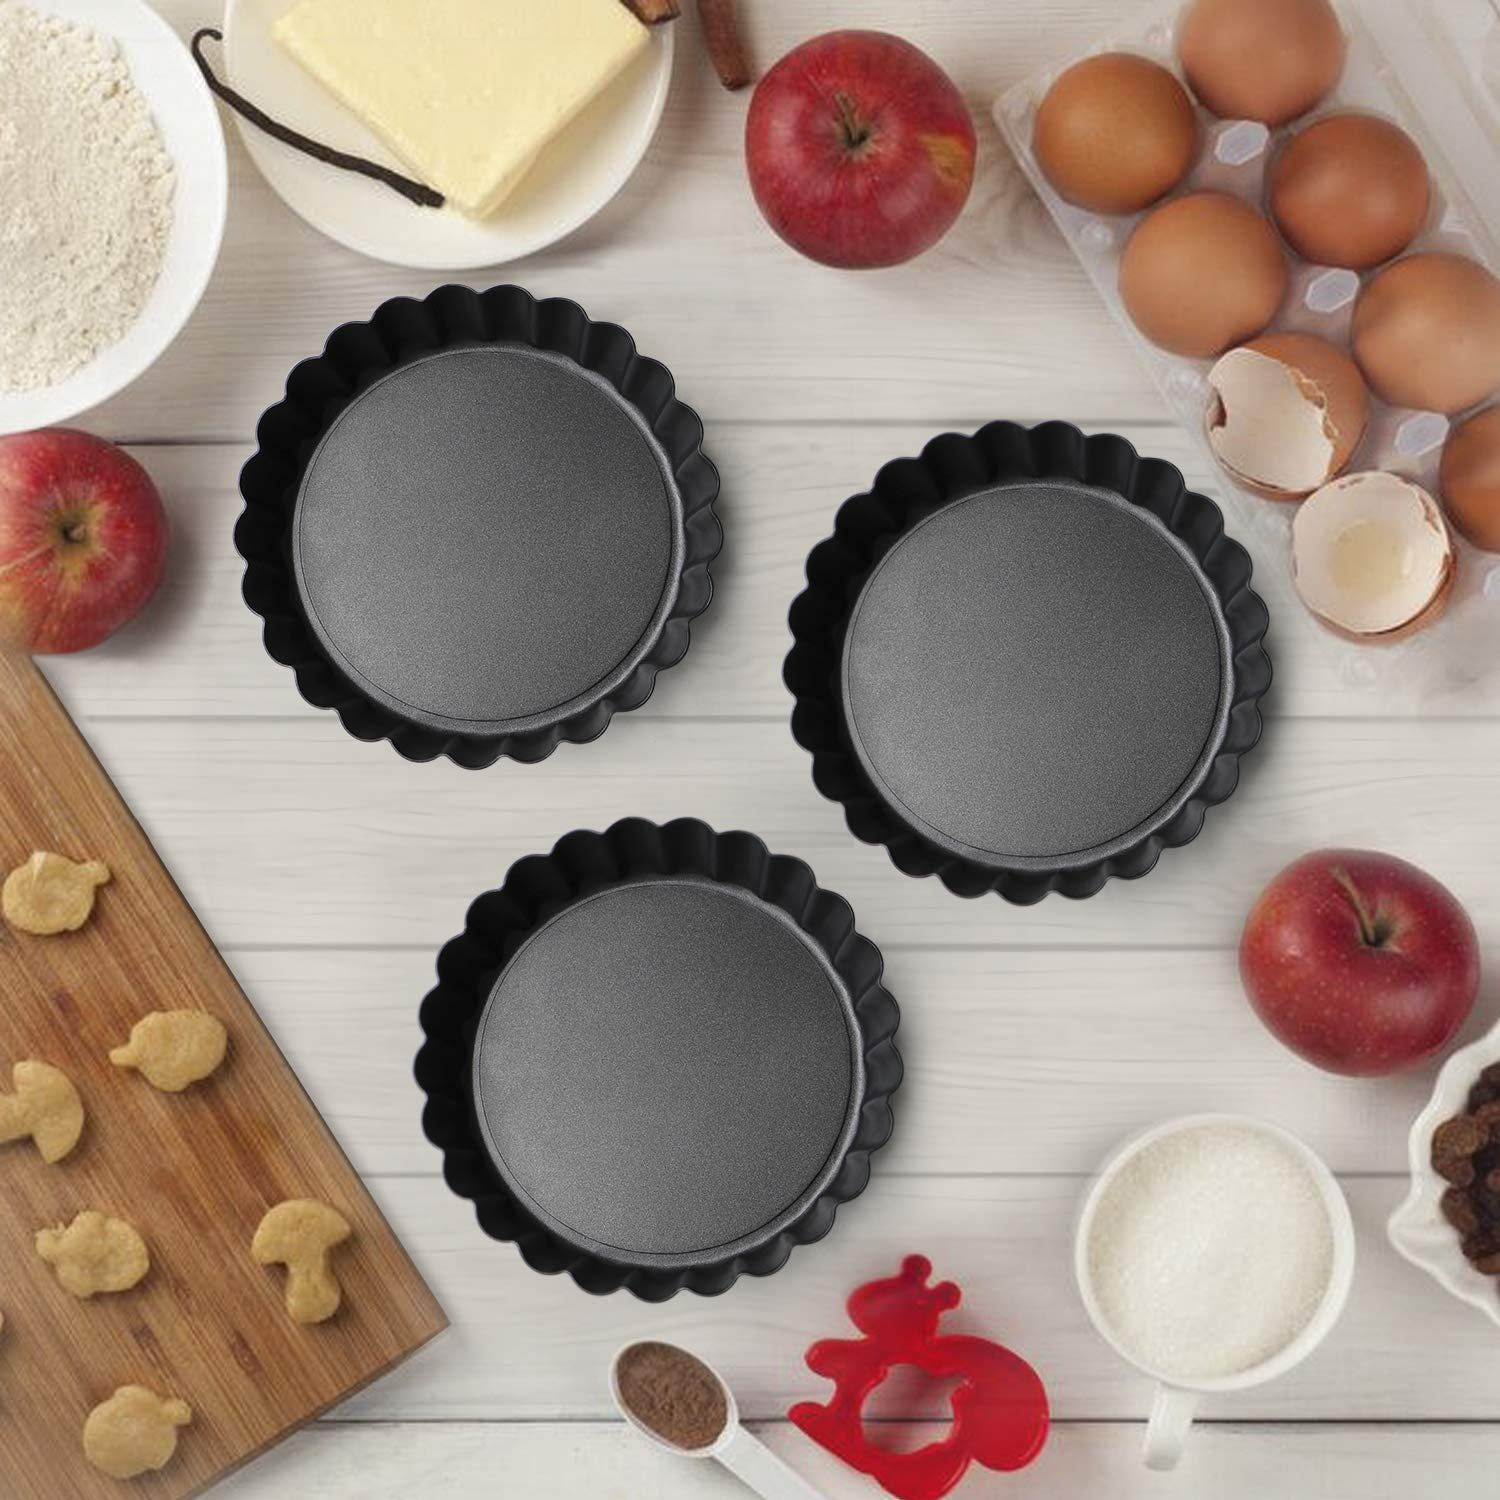 6 Pack Quiche Pans 4 inch Non-Stick Carbon Steel Mini Tart Pans with Removable Bottom with Pastry Brush /& Spatula